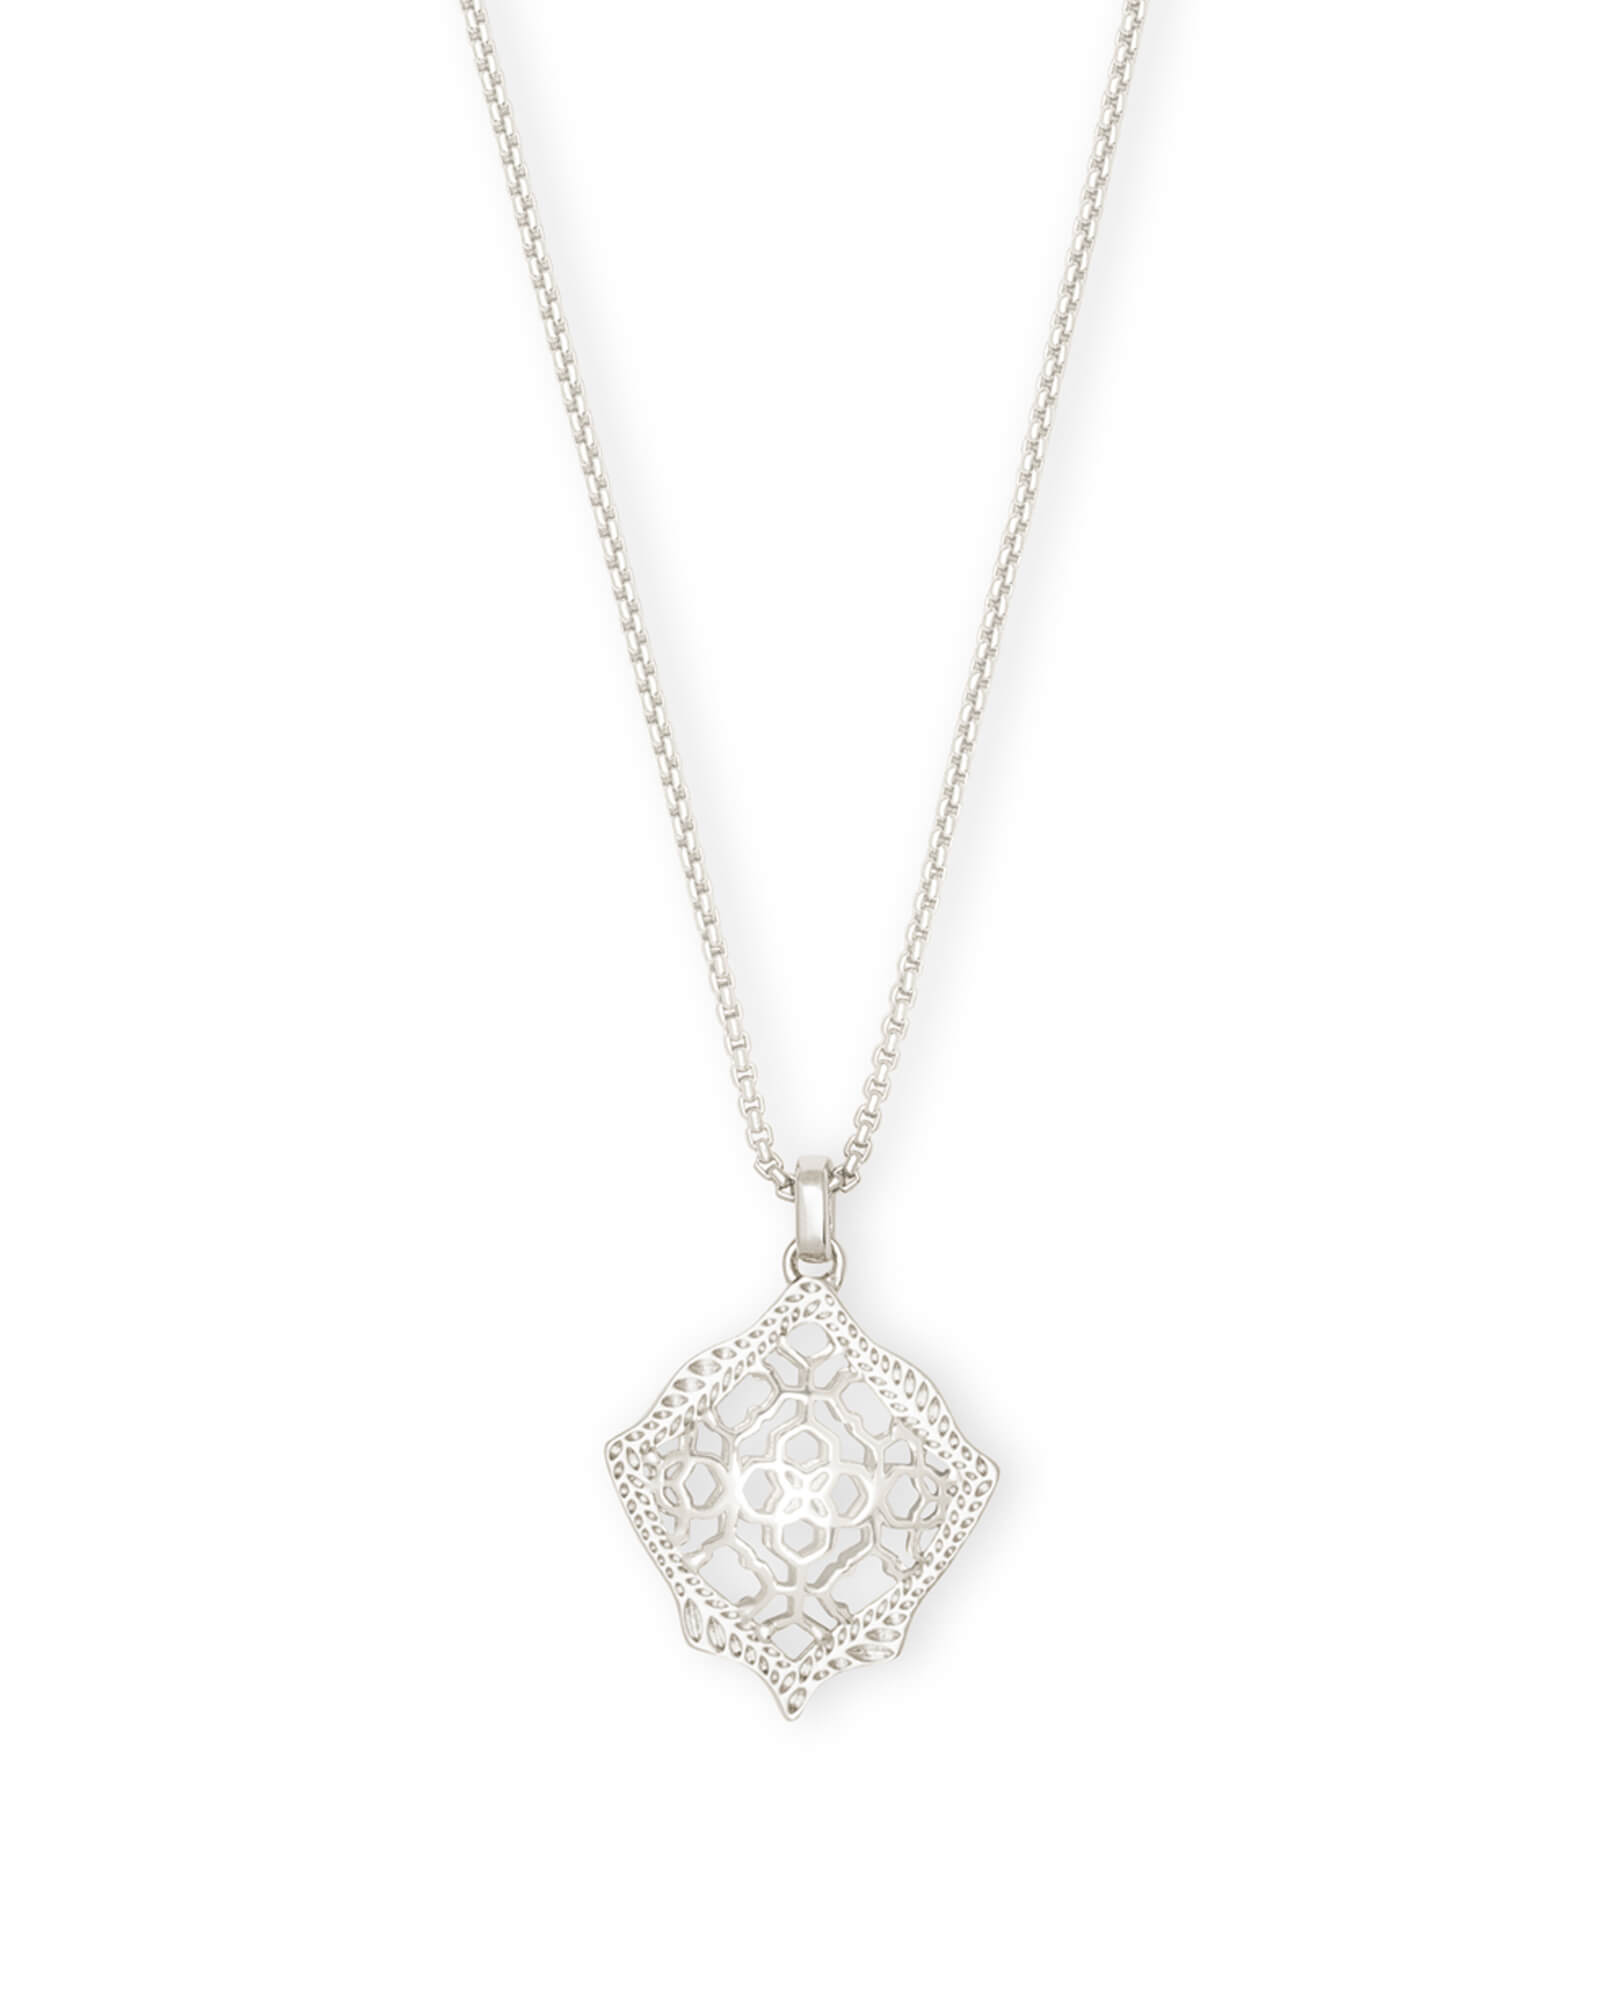 Kacey Silver Long Pendant Necklace in Silver Filigree Mix